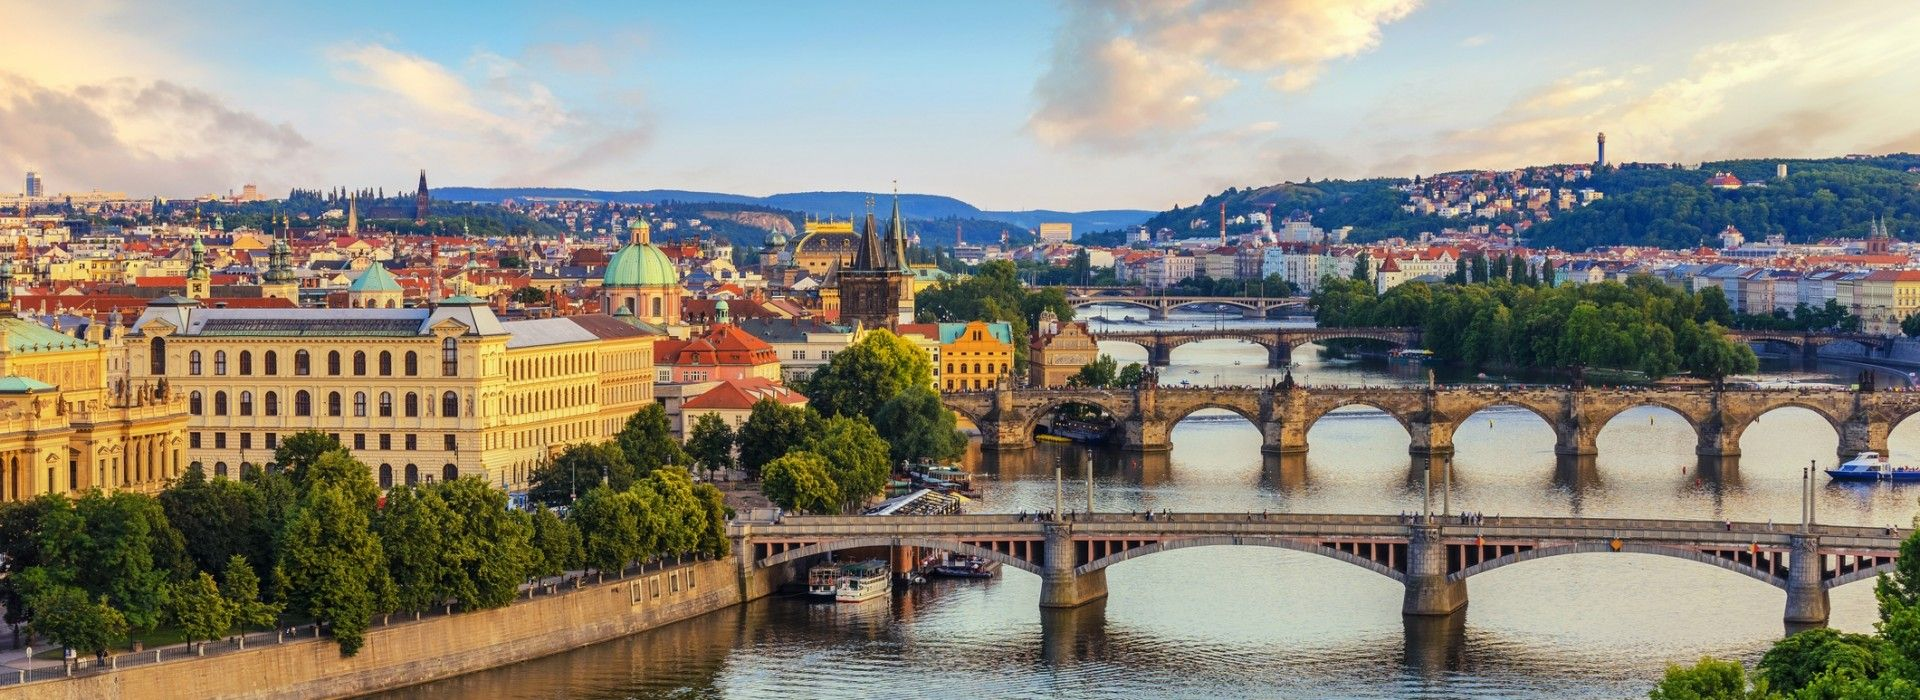 Sightseeing, attractions, culture and history Tours in Prague